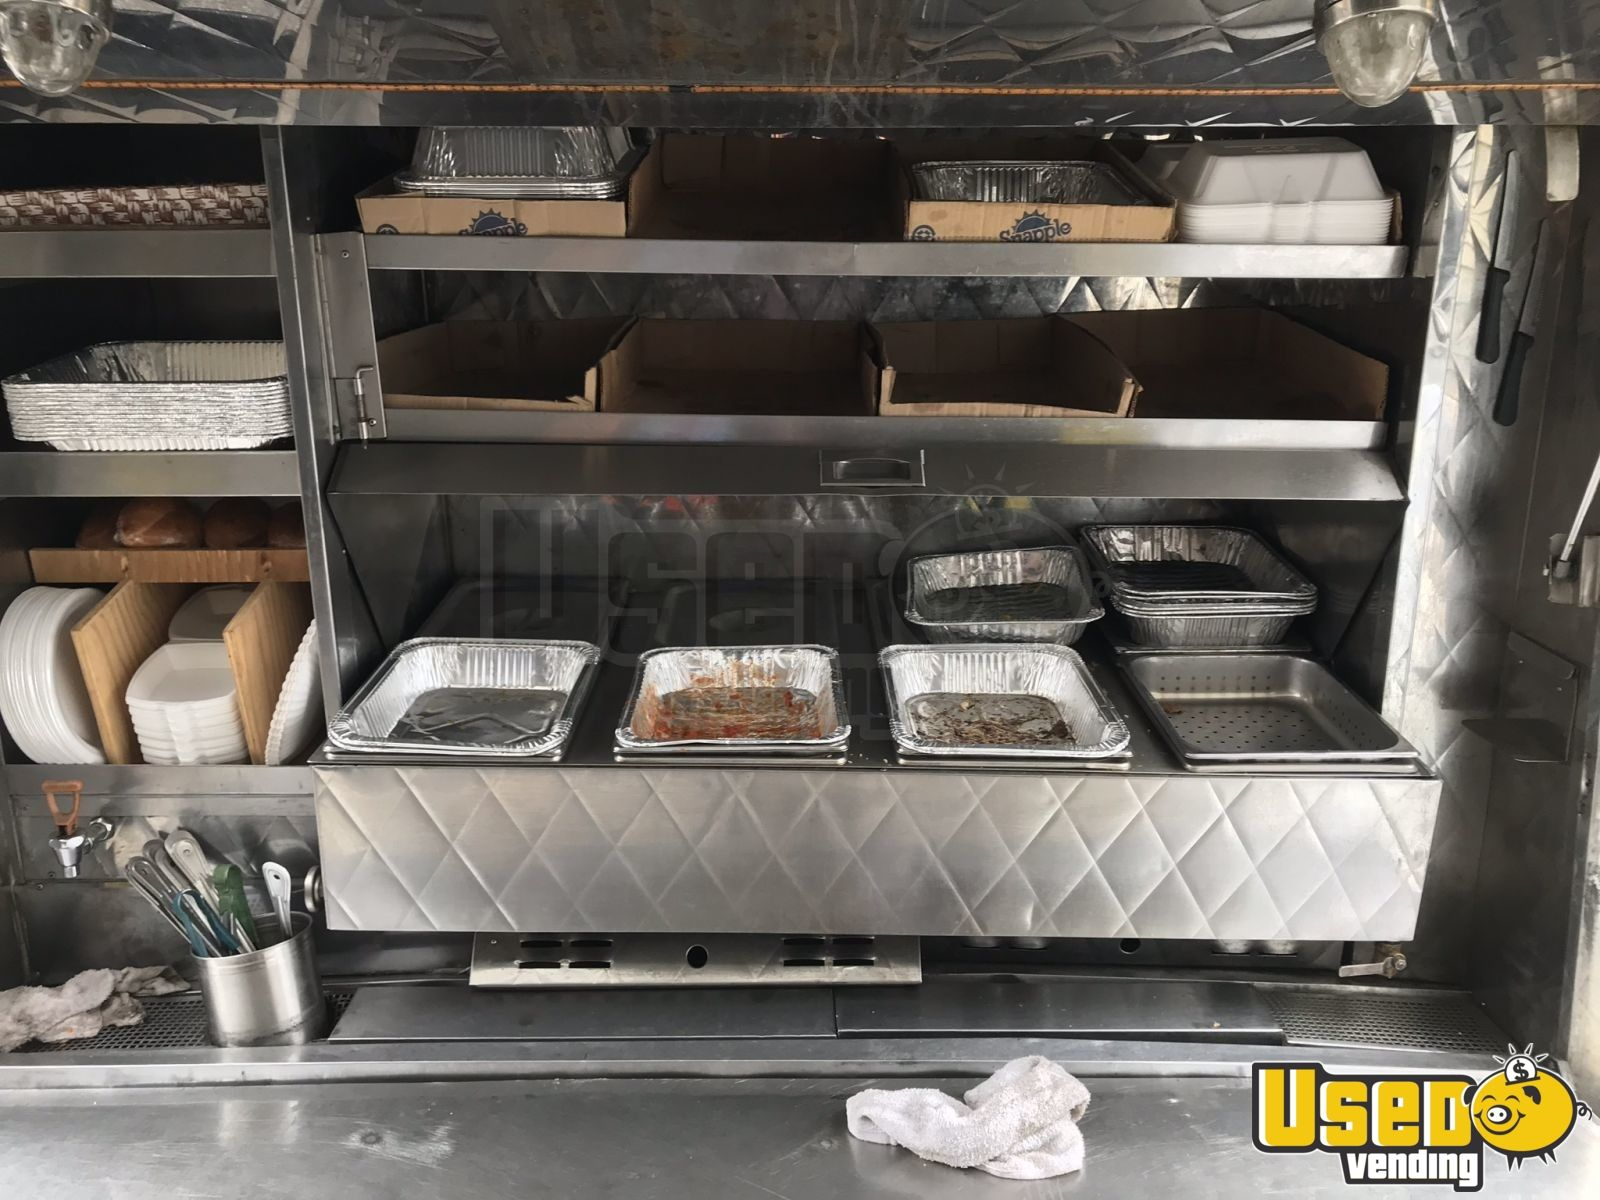 2017 Dodge Ram 3500 Dually Lunch Serving Food Truck Exterior Customer Counter New Jersey Gas Engine for Sale - 6